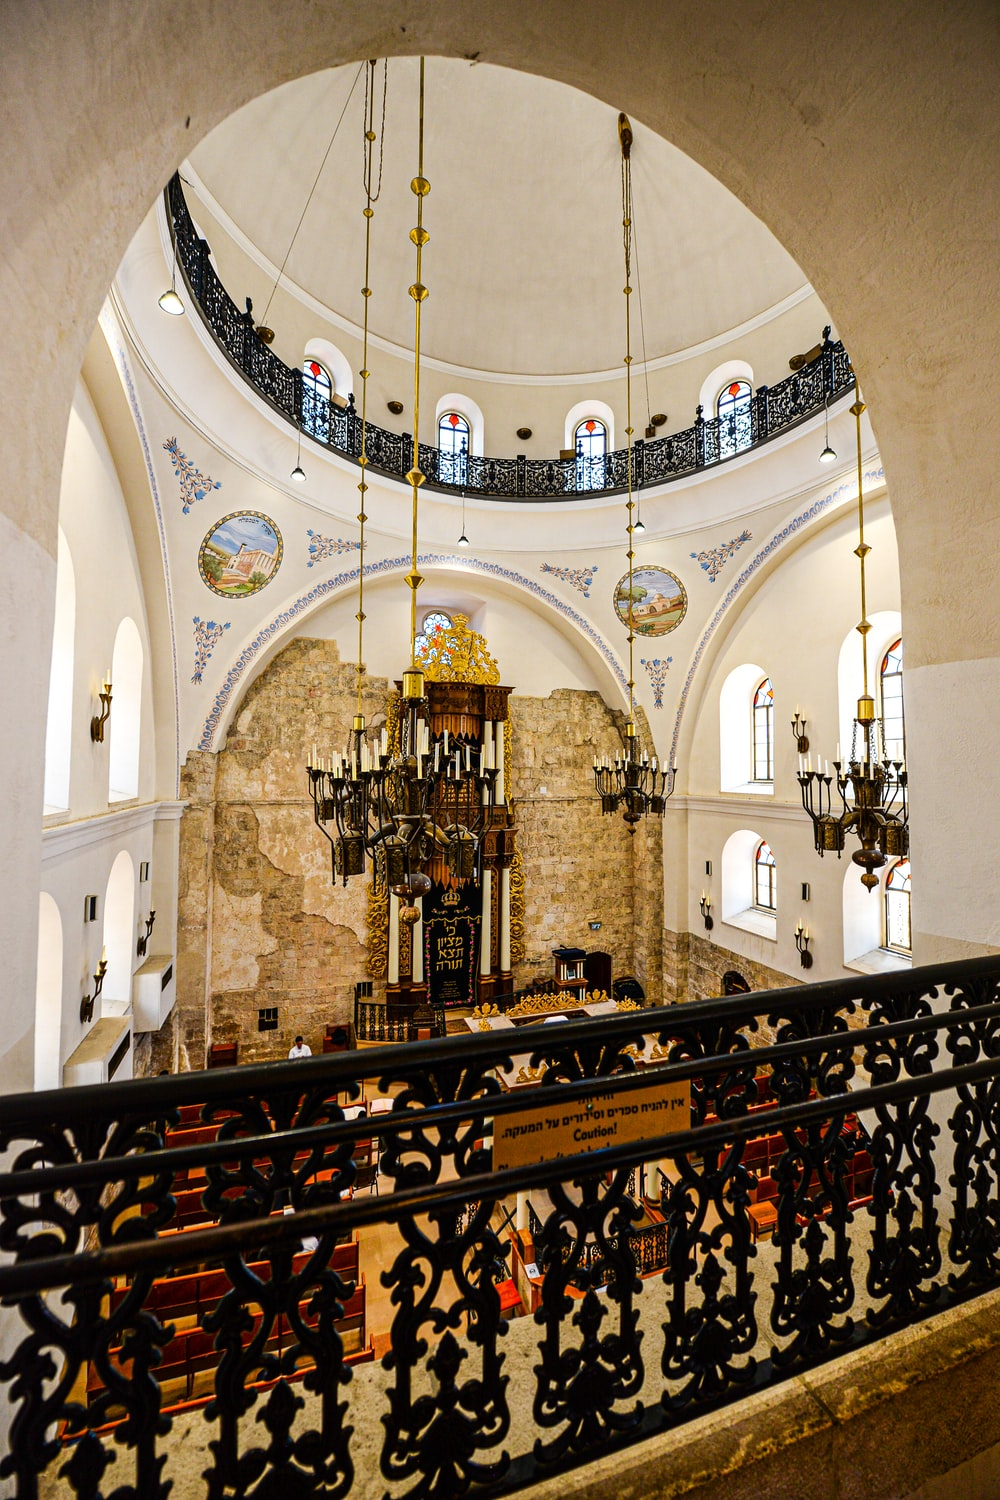 cathedral interior during day